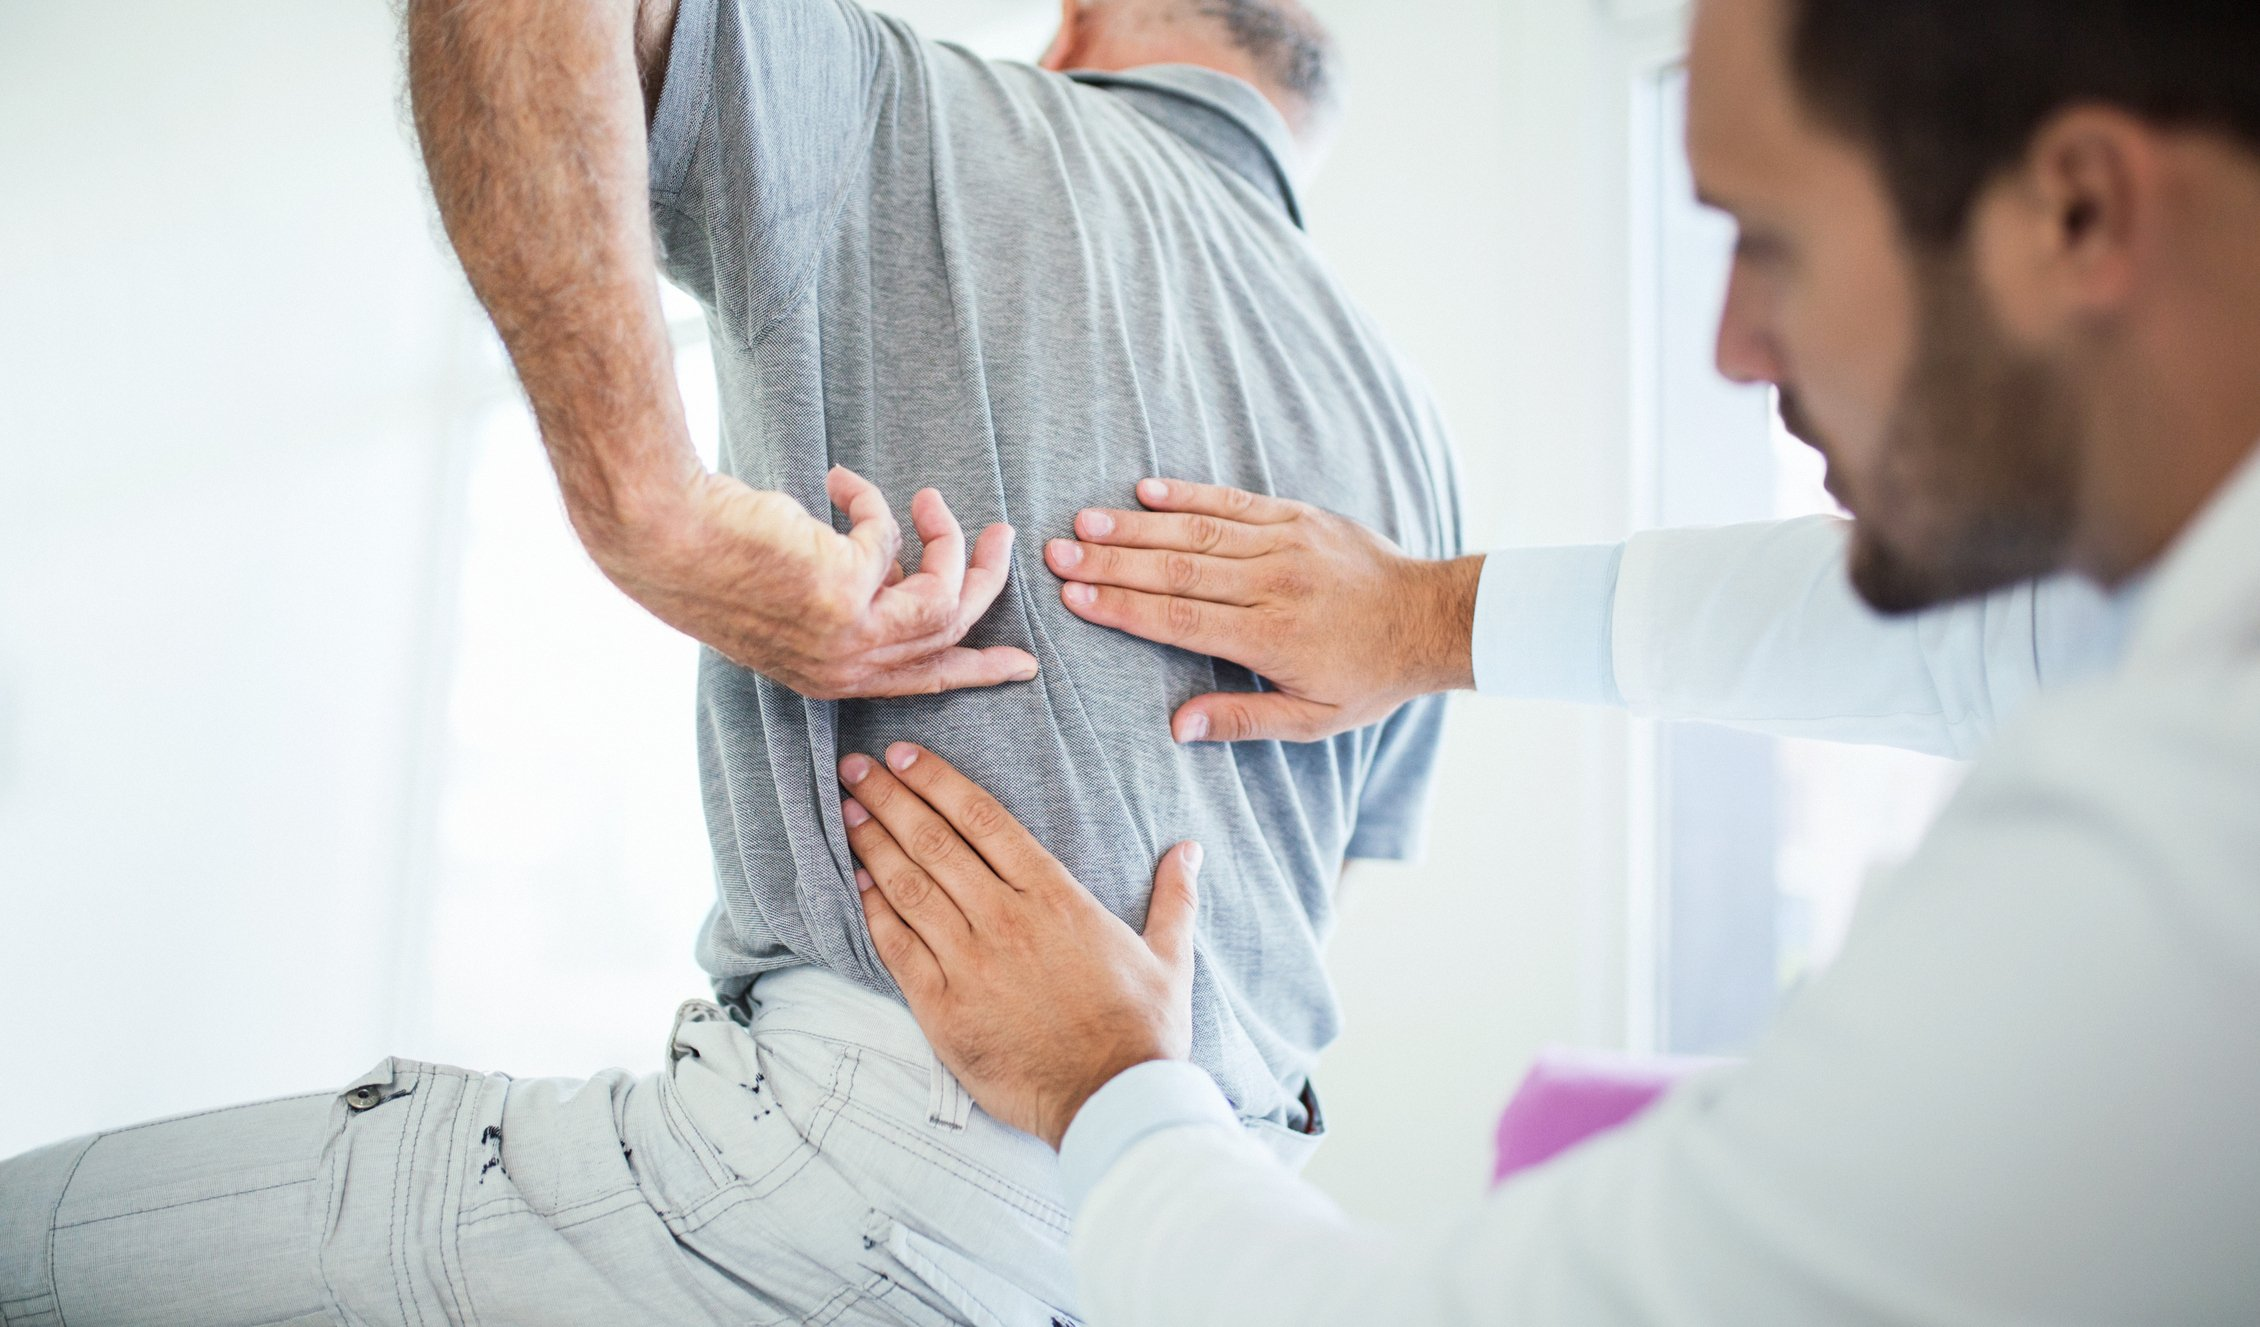 Chiropractors can improve your balance and coordination